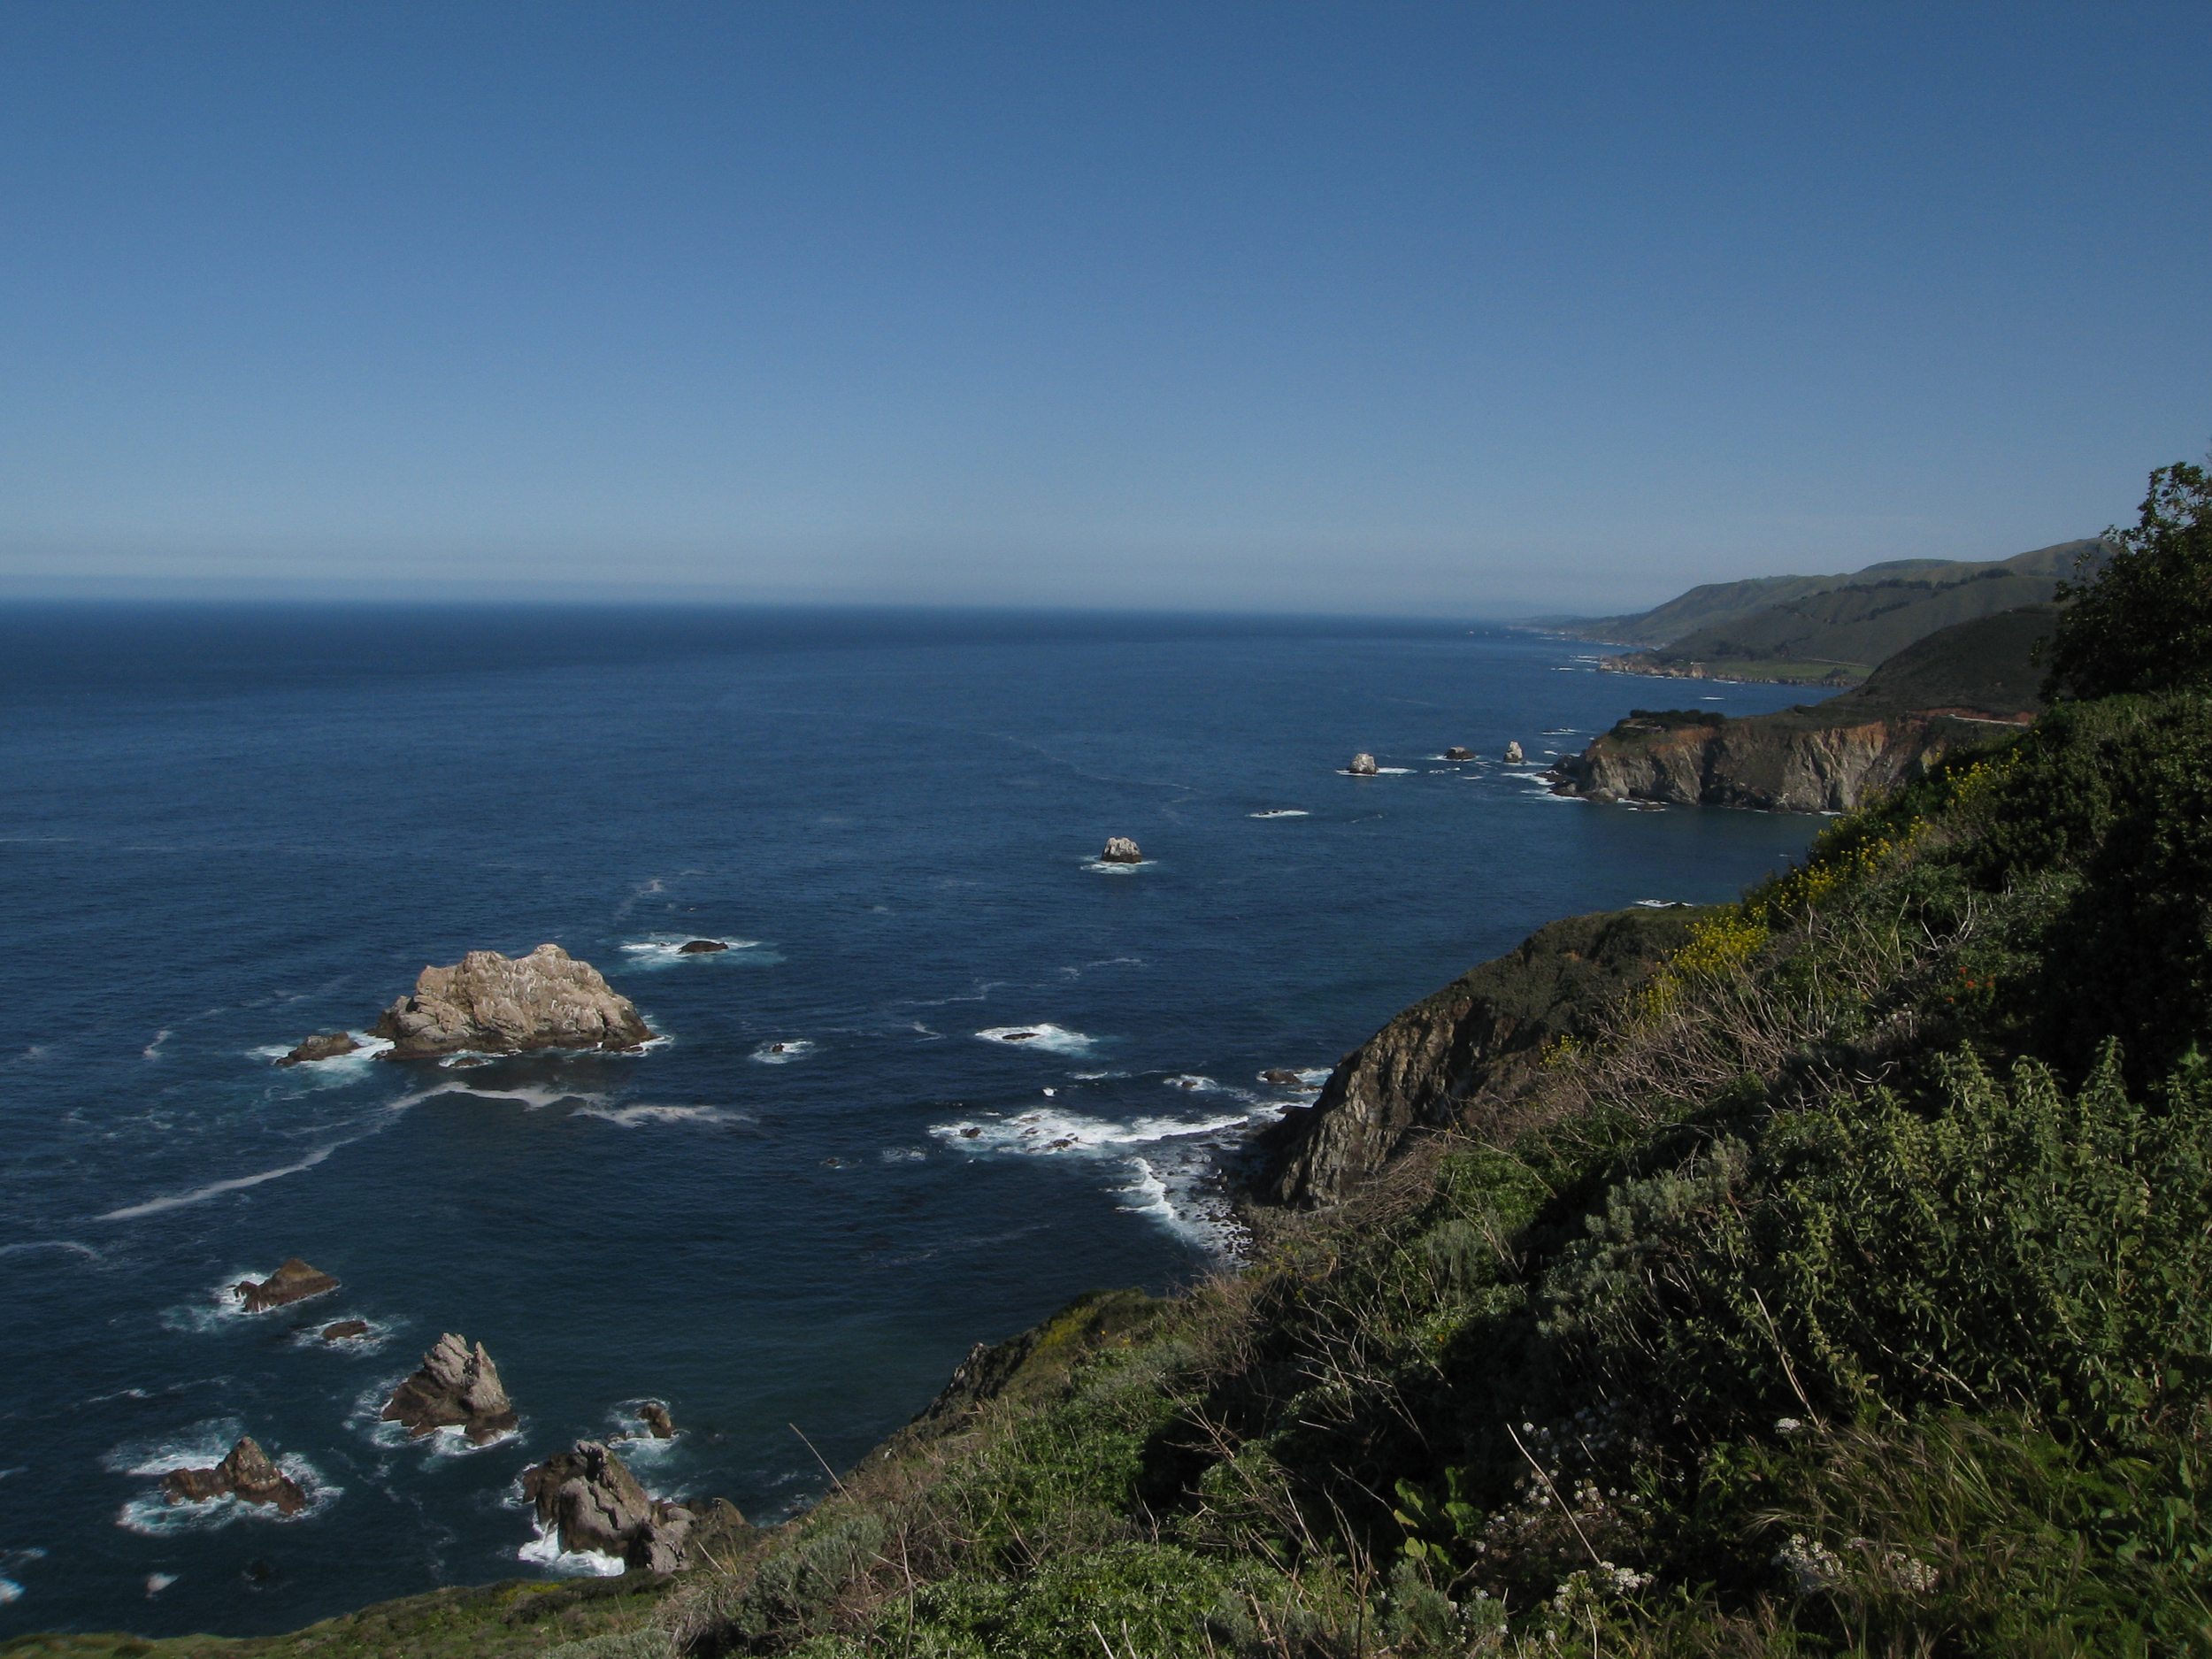 IMG_6017 - big sur coast-277.jpg